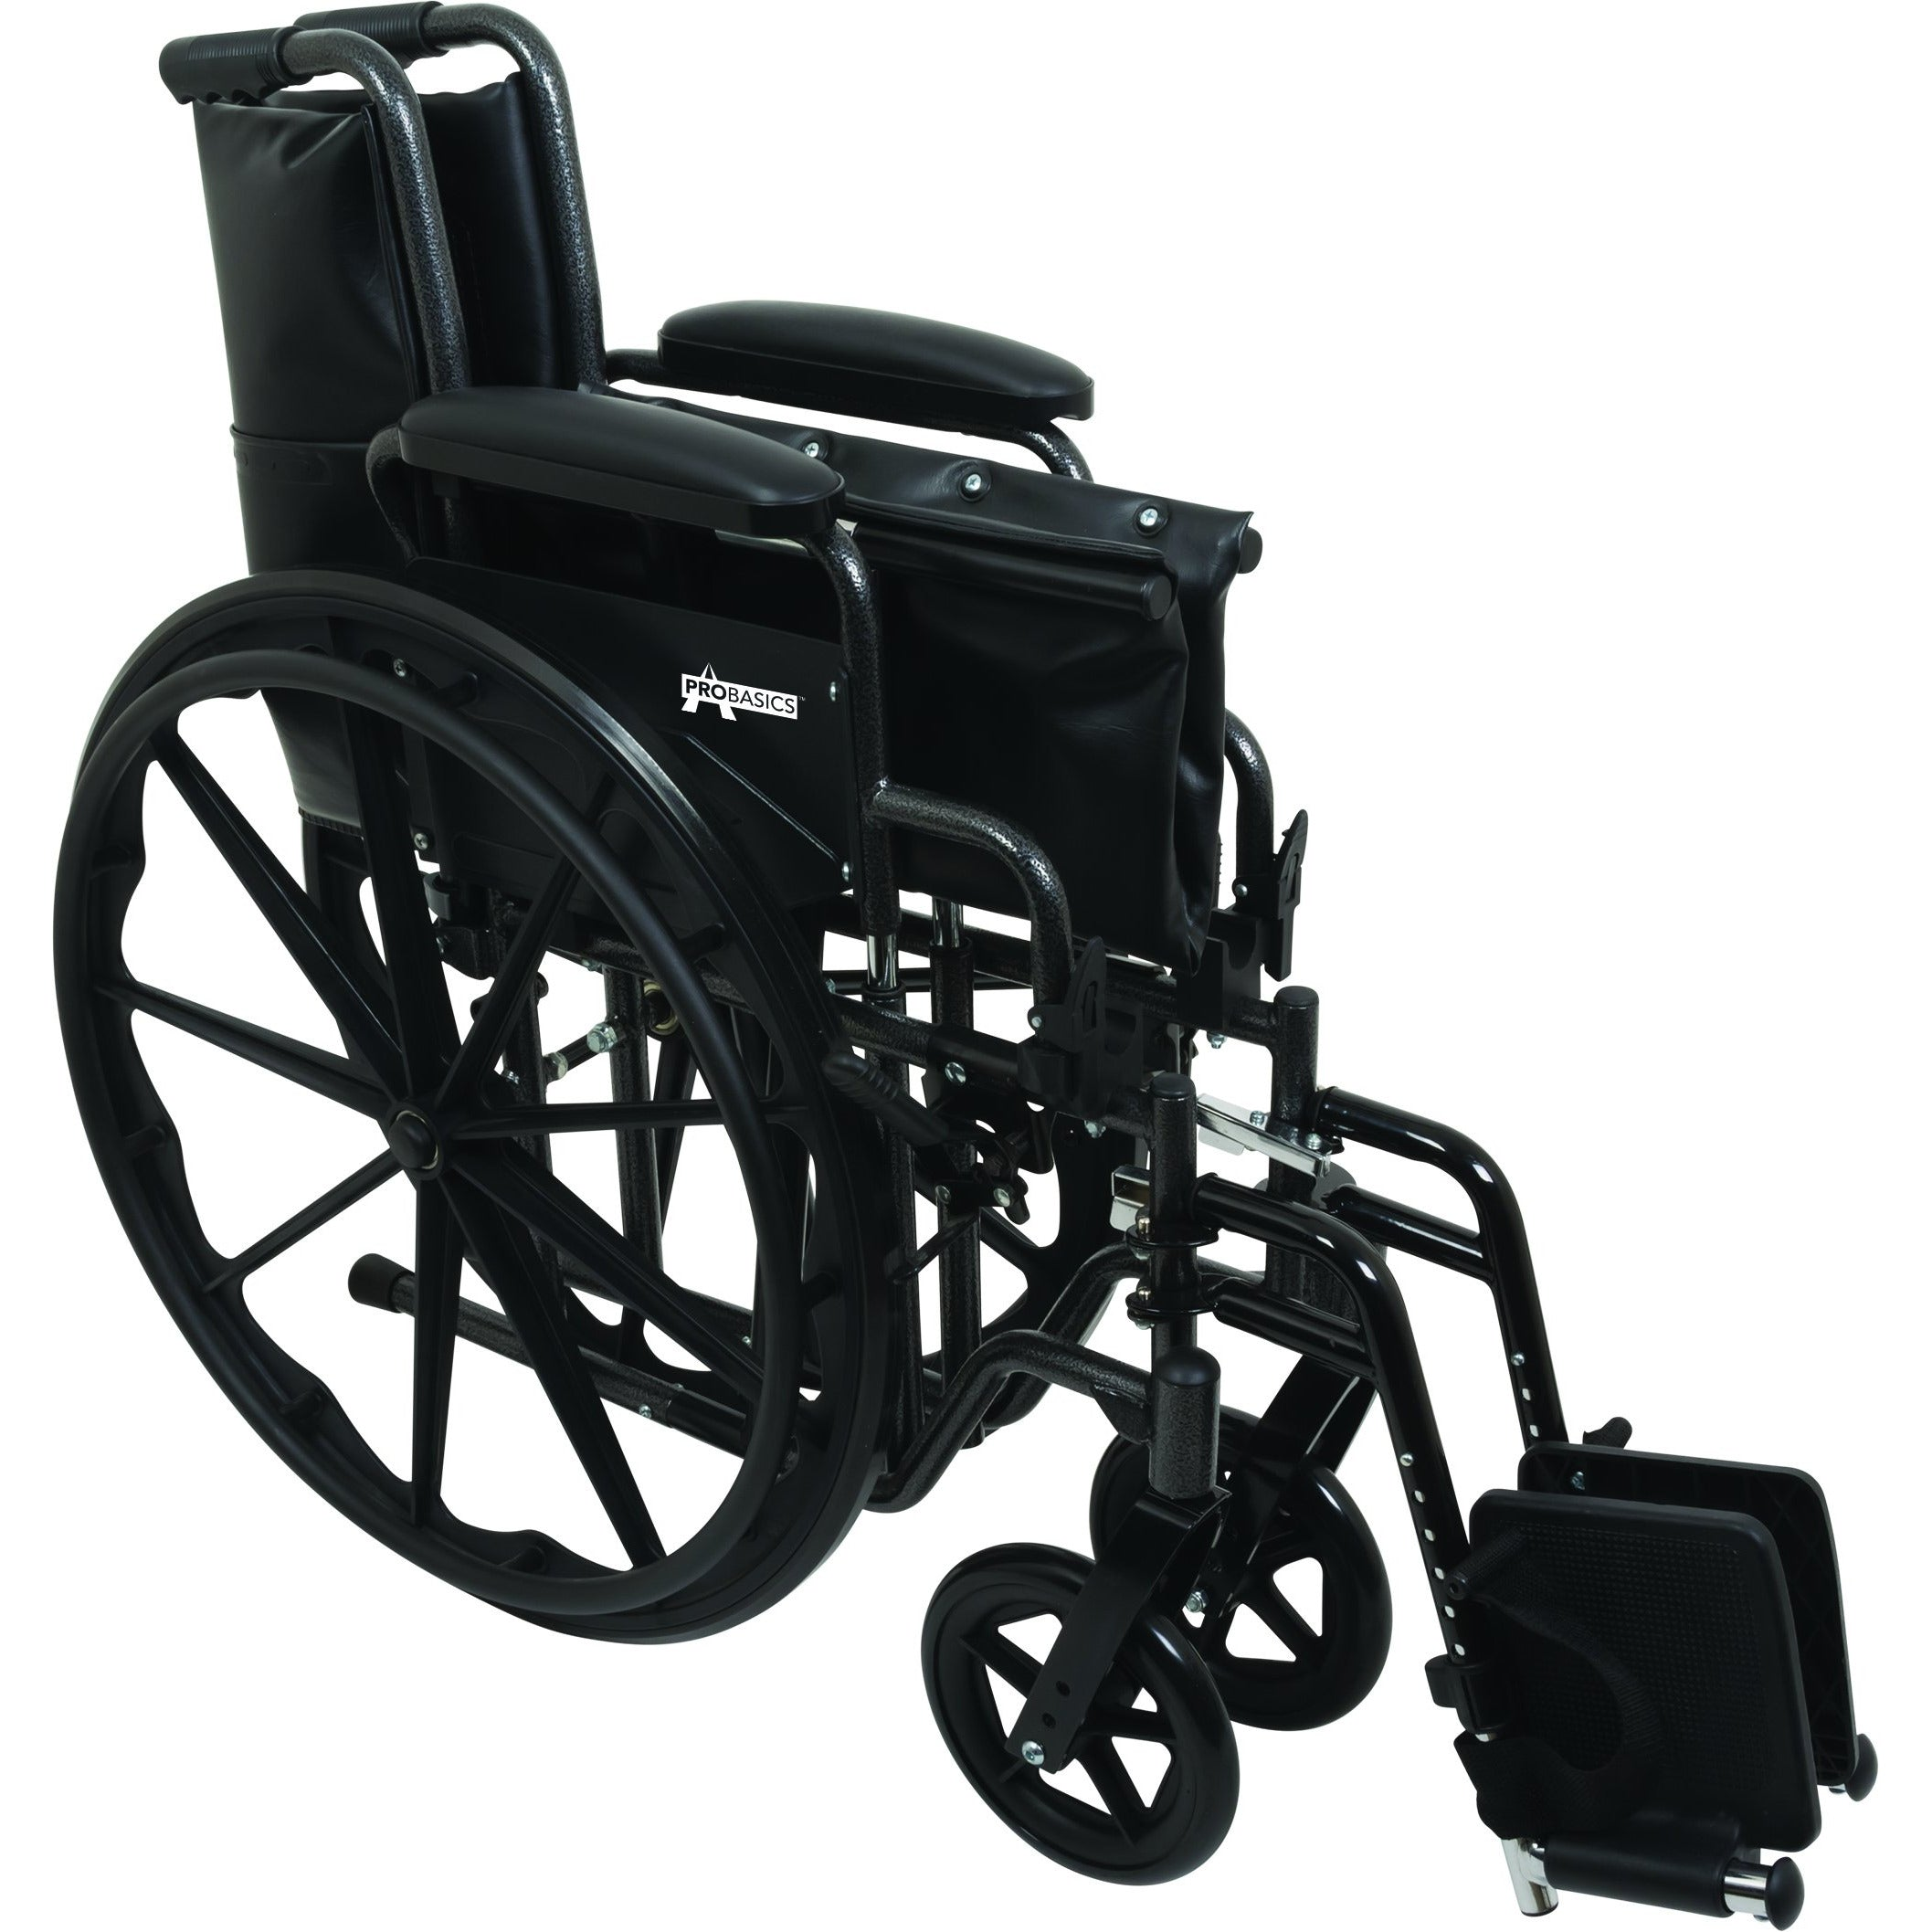 Vonco ProBasics K2 Wheelchair, 18